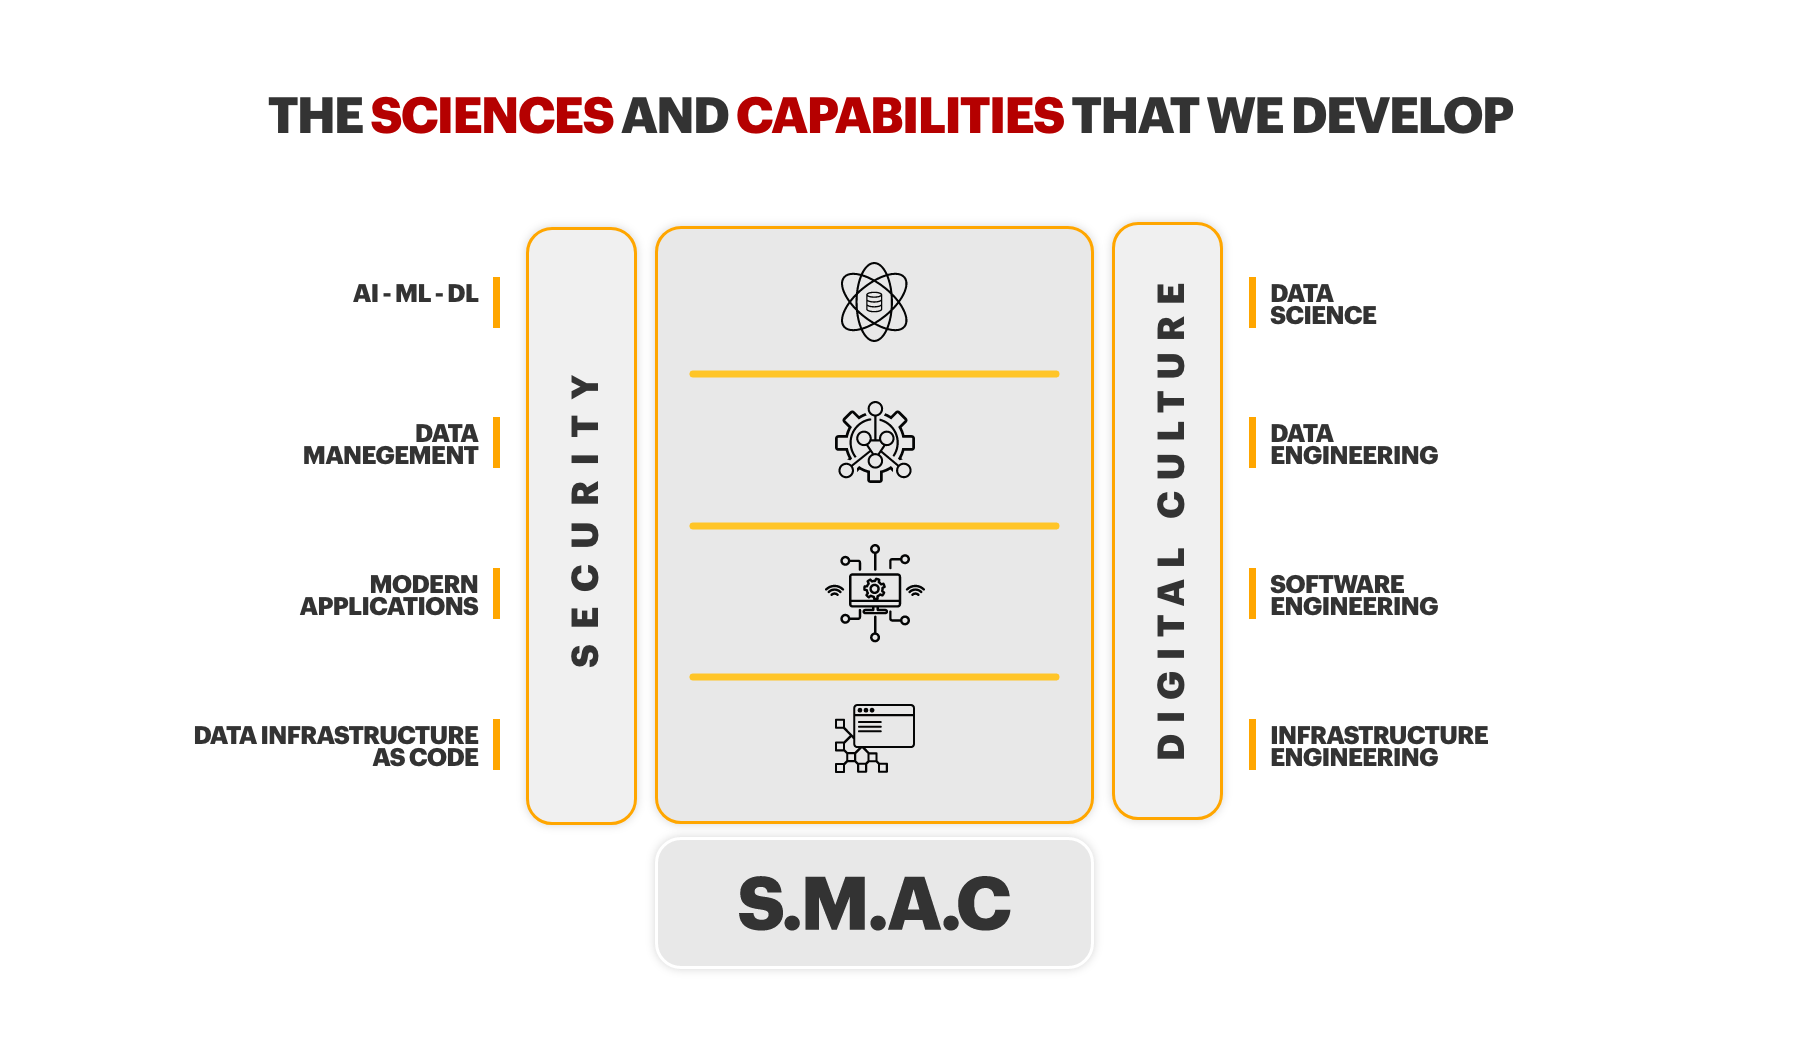 The sciences and capabilities that we develop